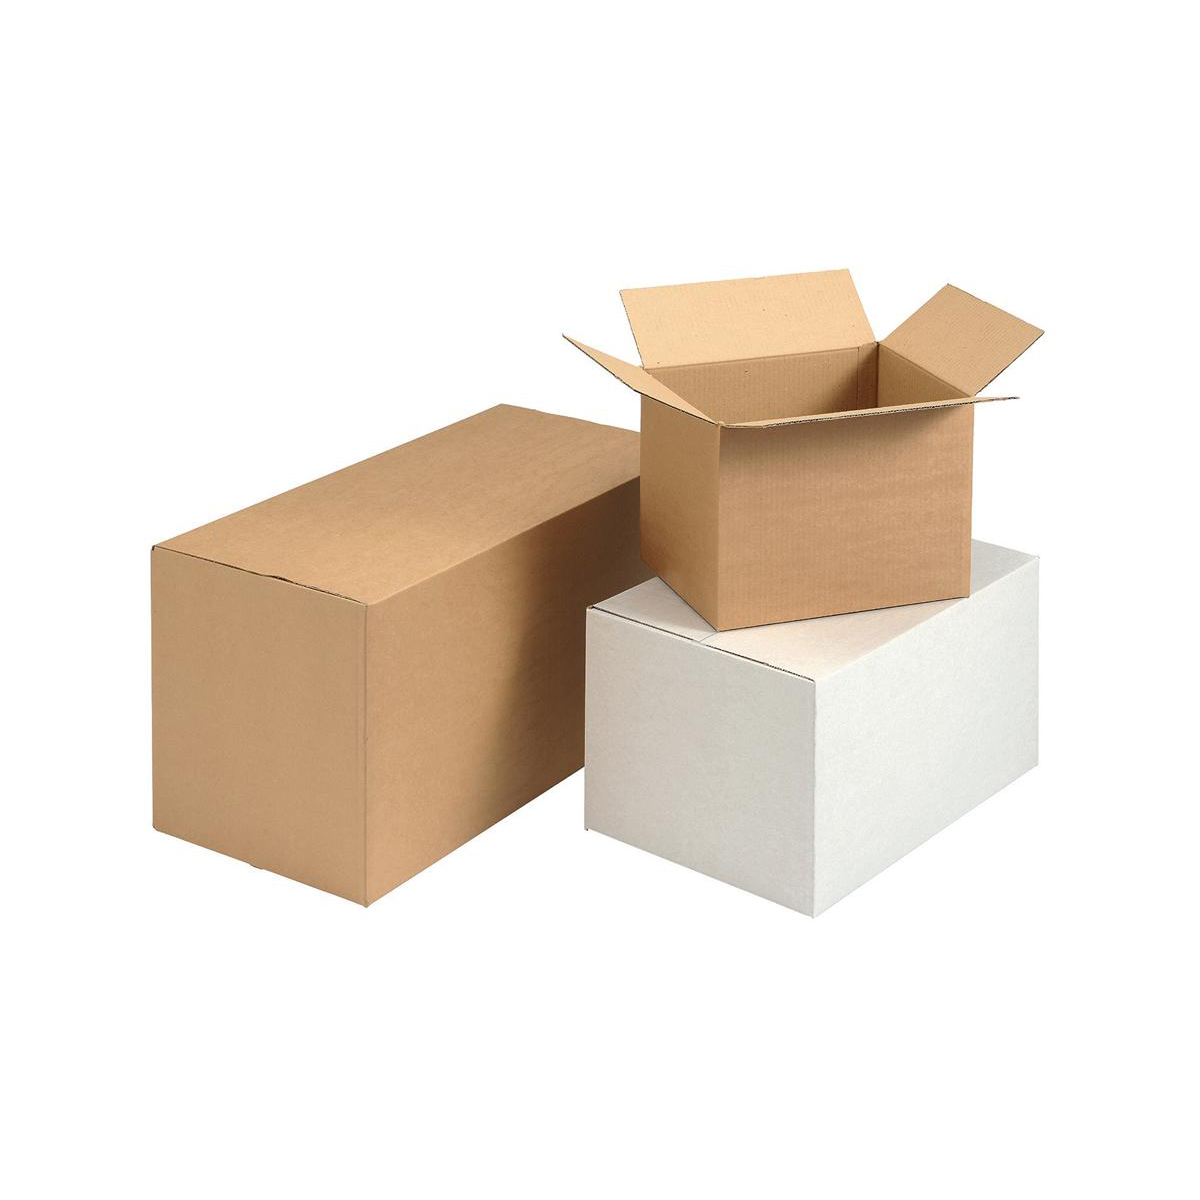 Packing Carton Single Wall Strong Flat Packed W635xD305xH330mm Brown Pack 10